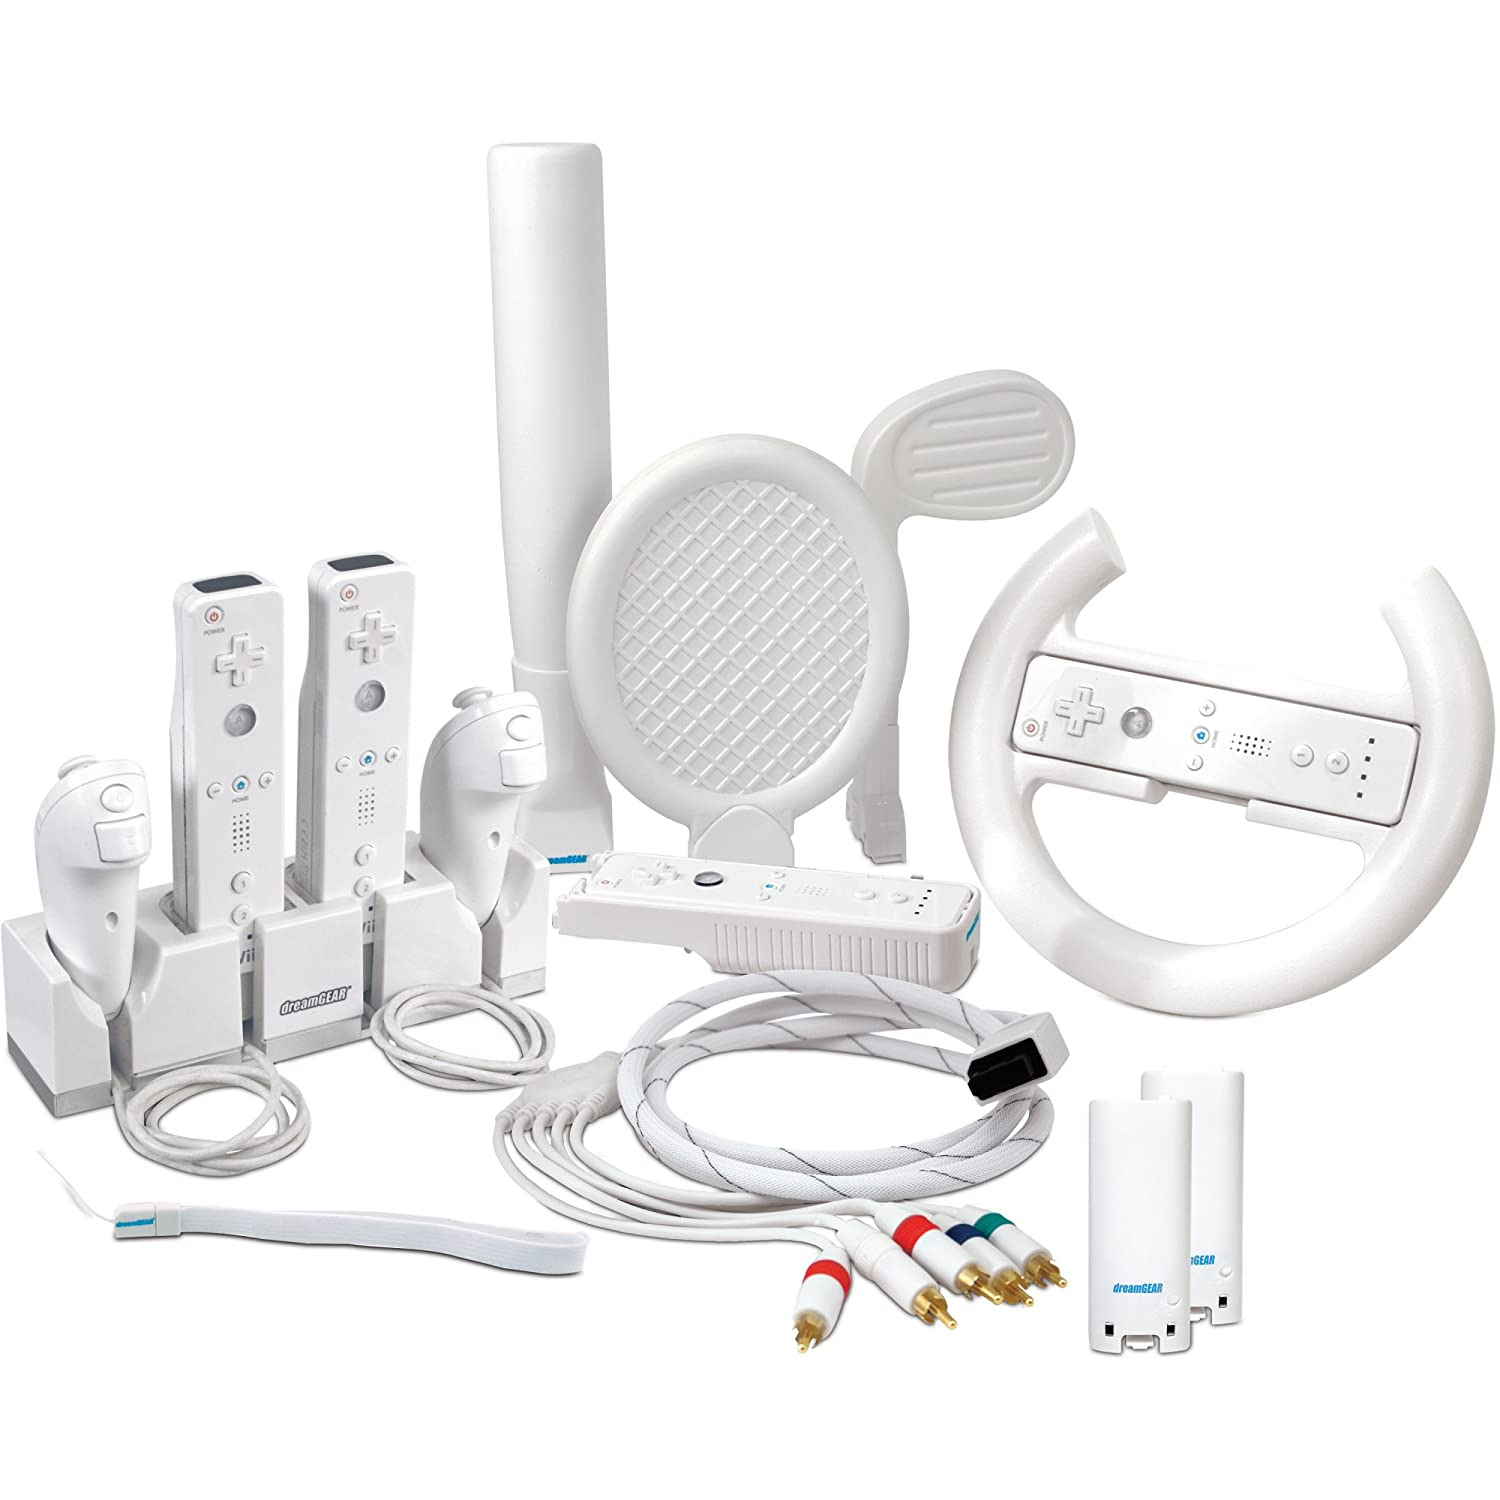 Wii 10 in 1 Players Kit